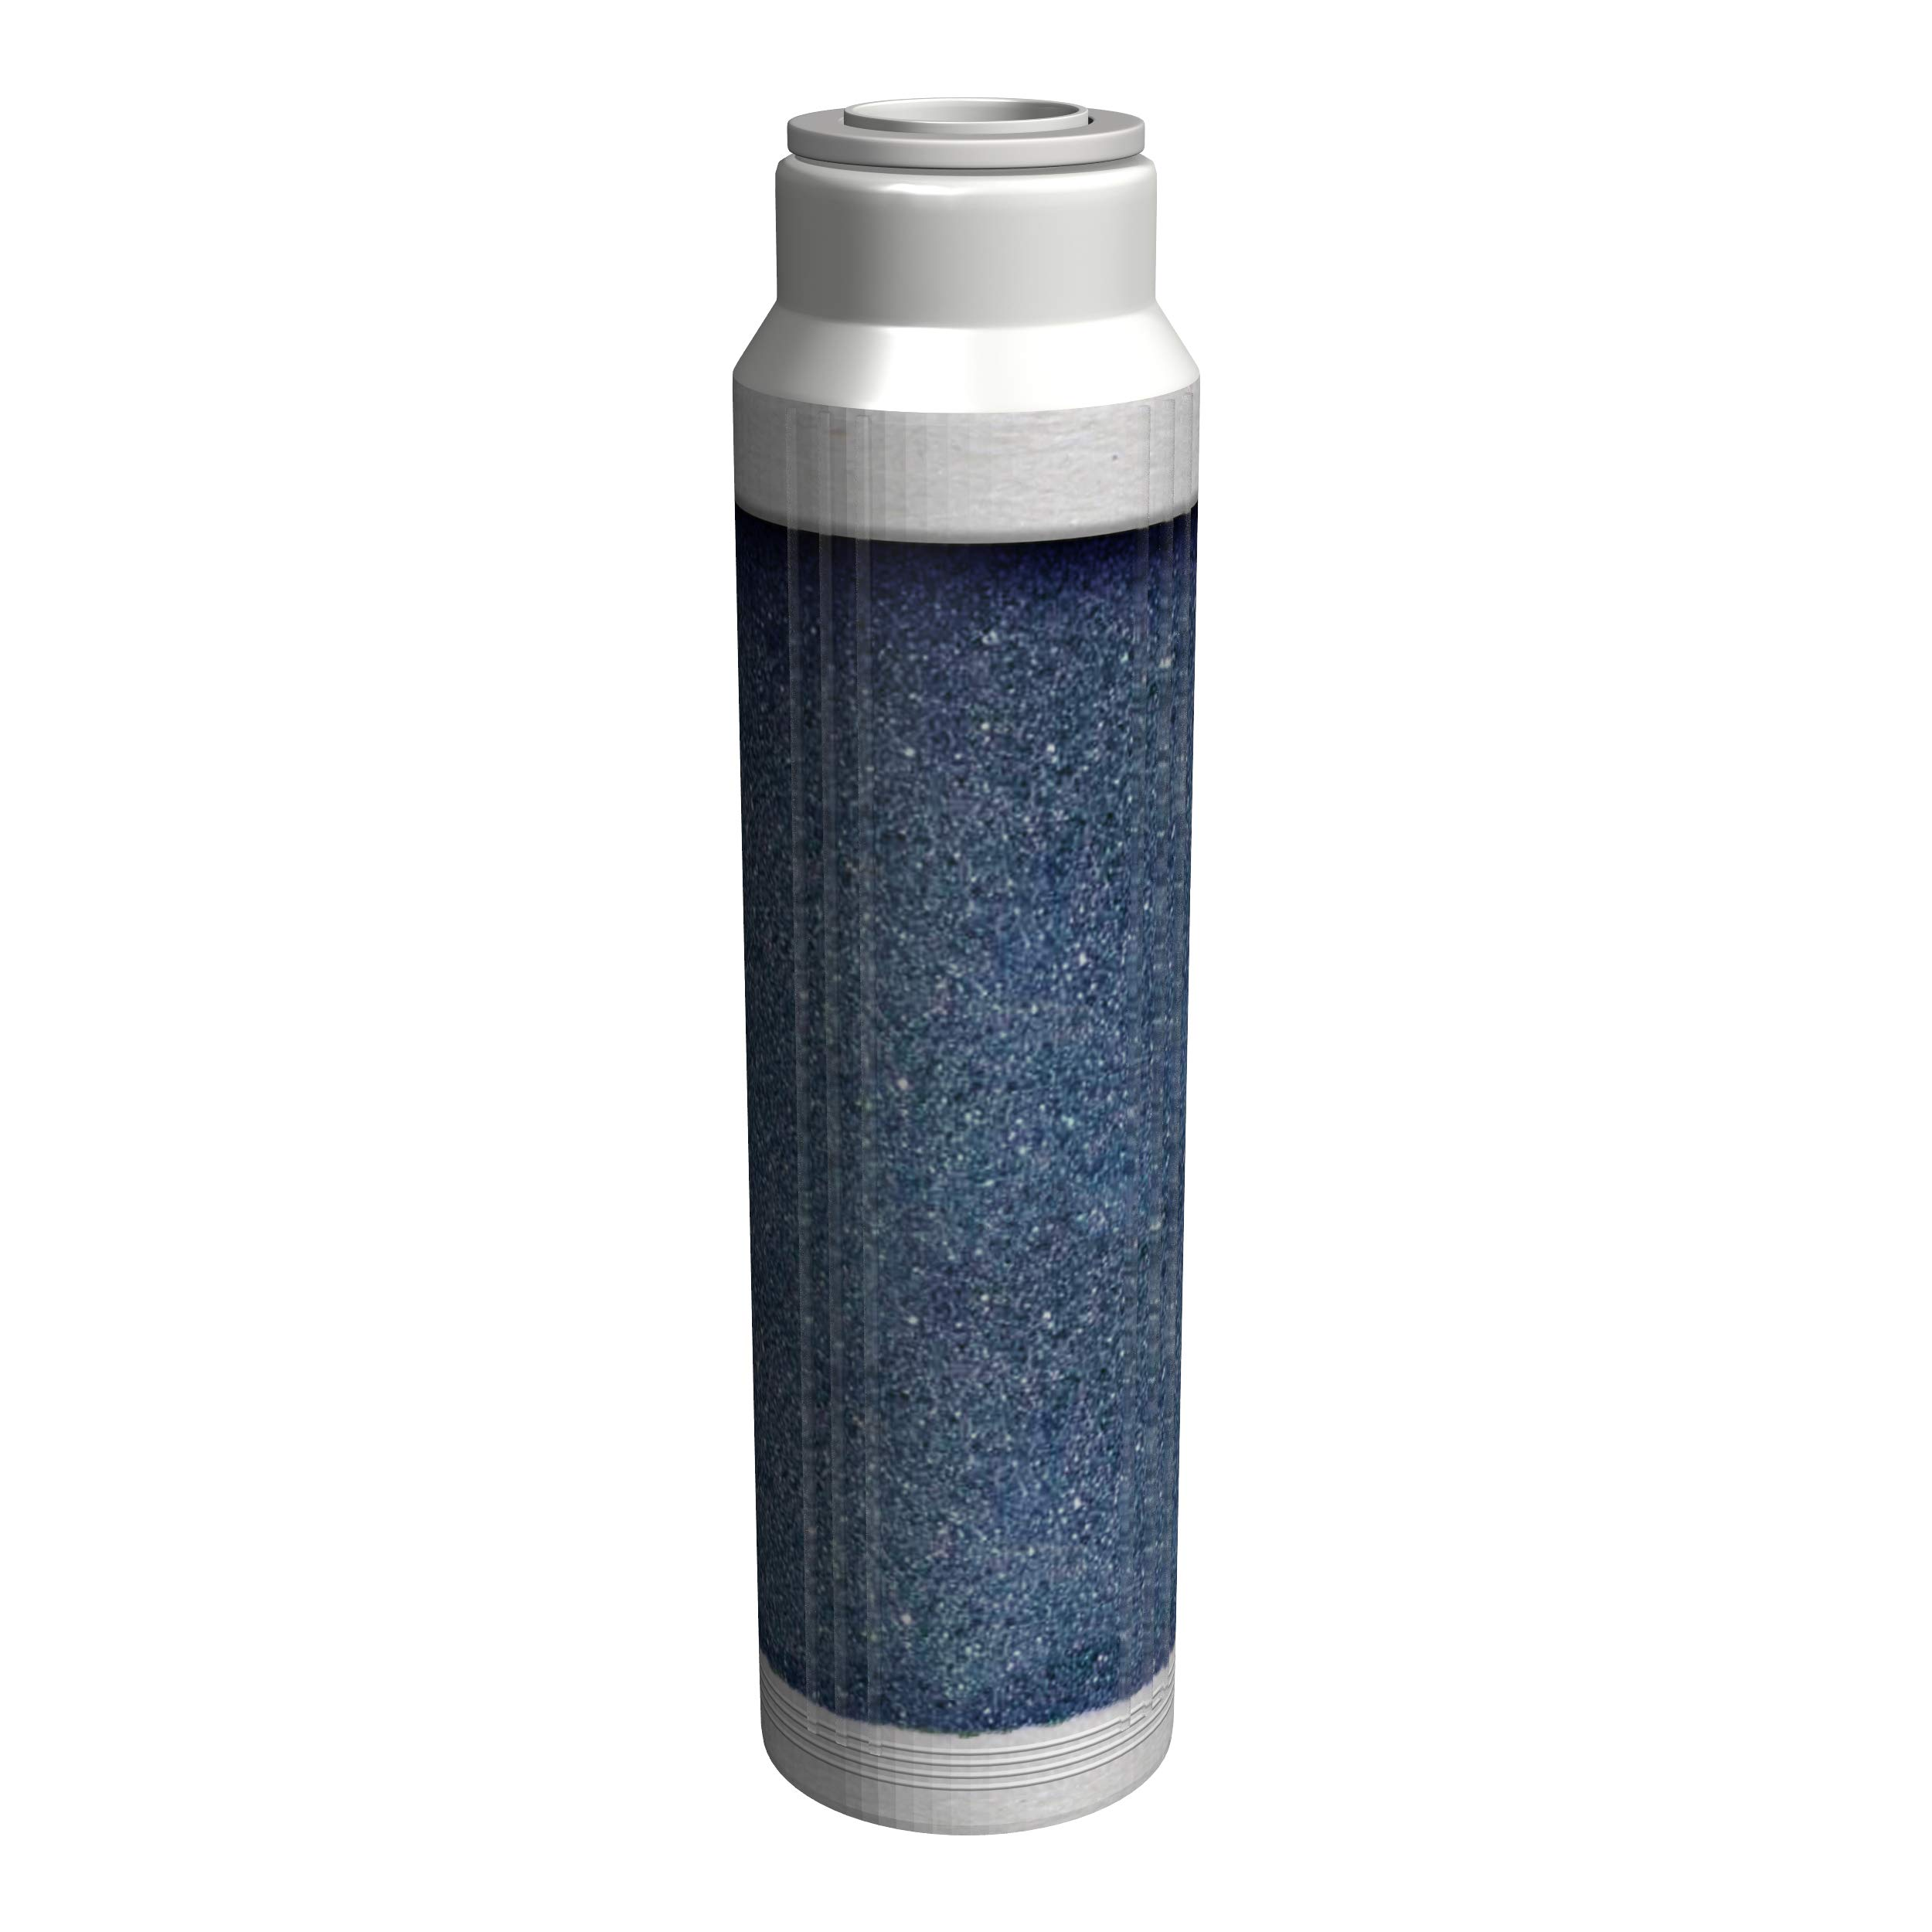 Aquatic Life Cartridge Mixed Bed Resin for Filtration